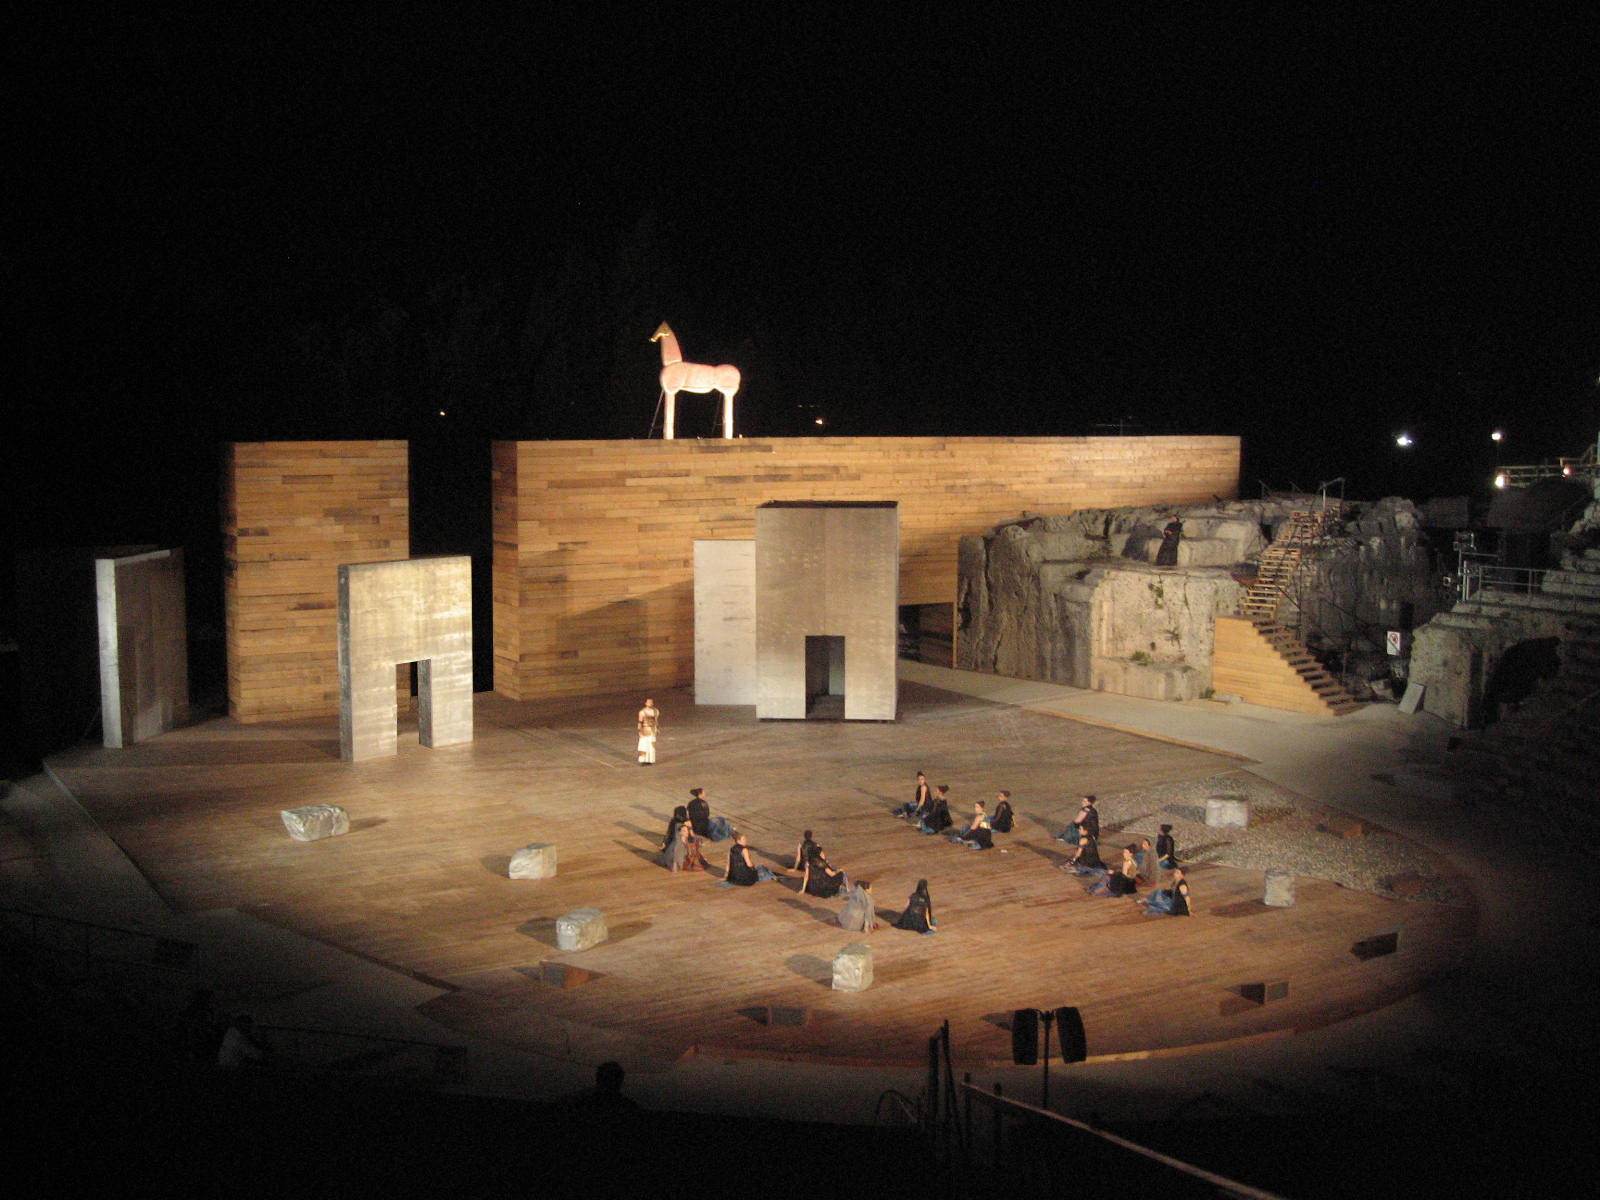 Stage designs for the Greek Theater of Syracusa - Garcés - de Seta - Bonet